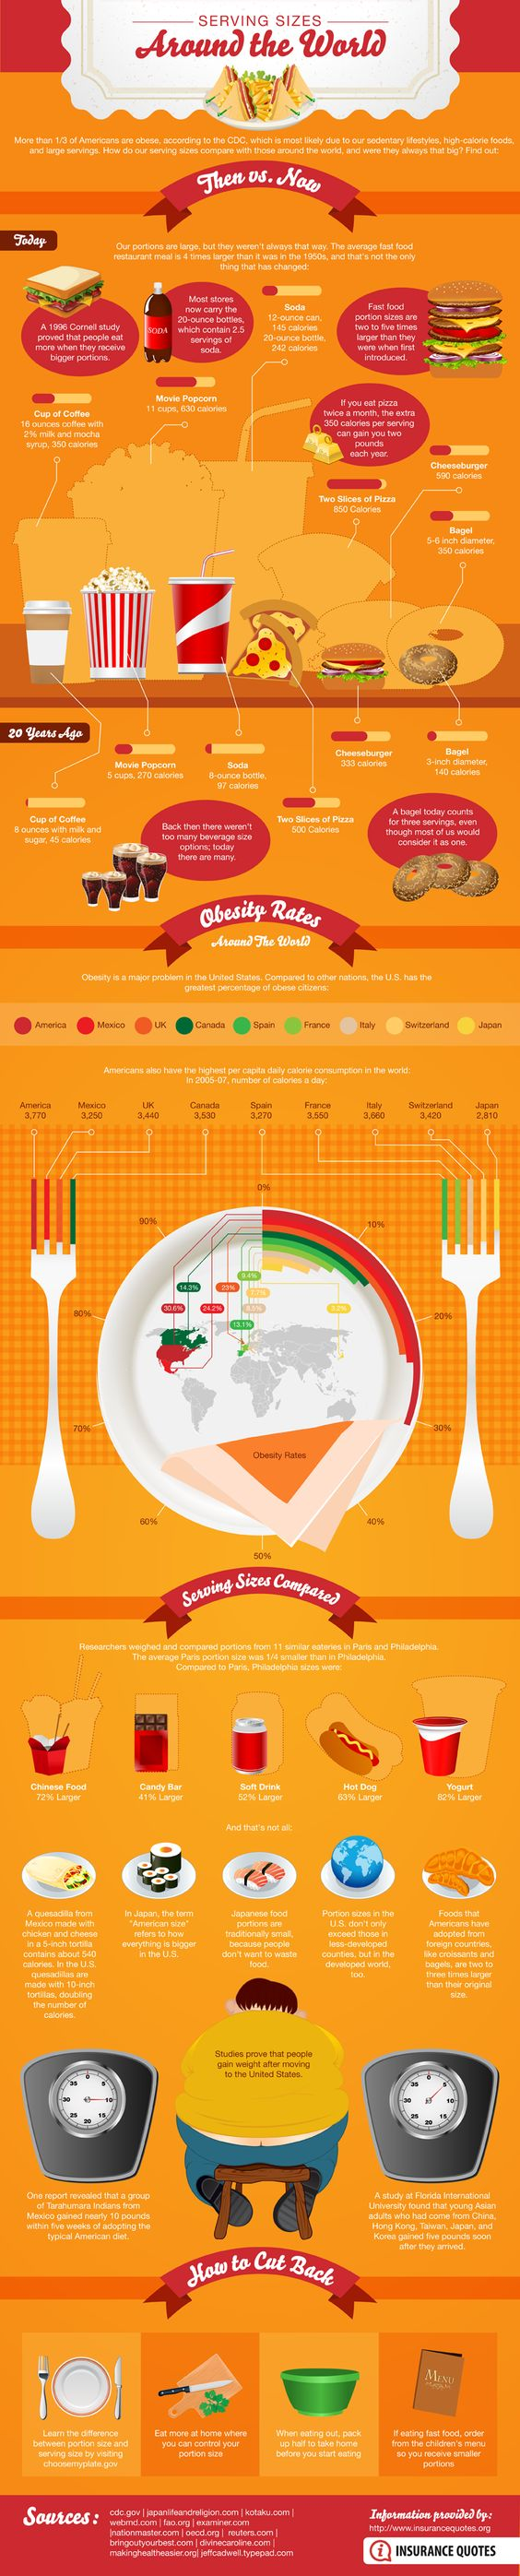 Cool infographic about how serving sizes have changed over the years & around the world